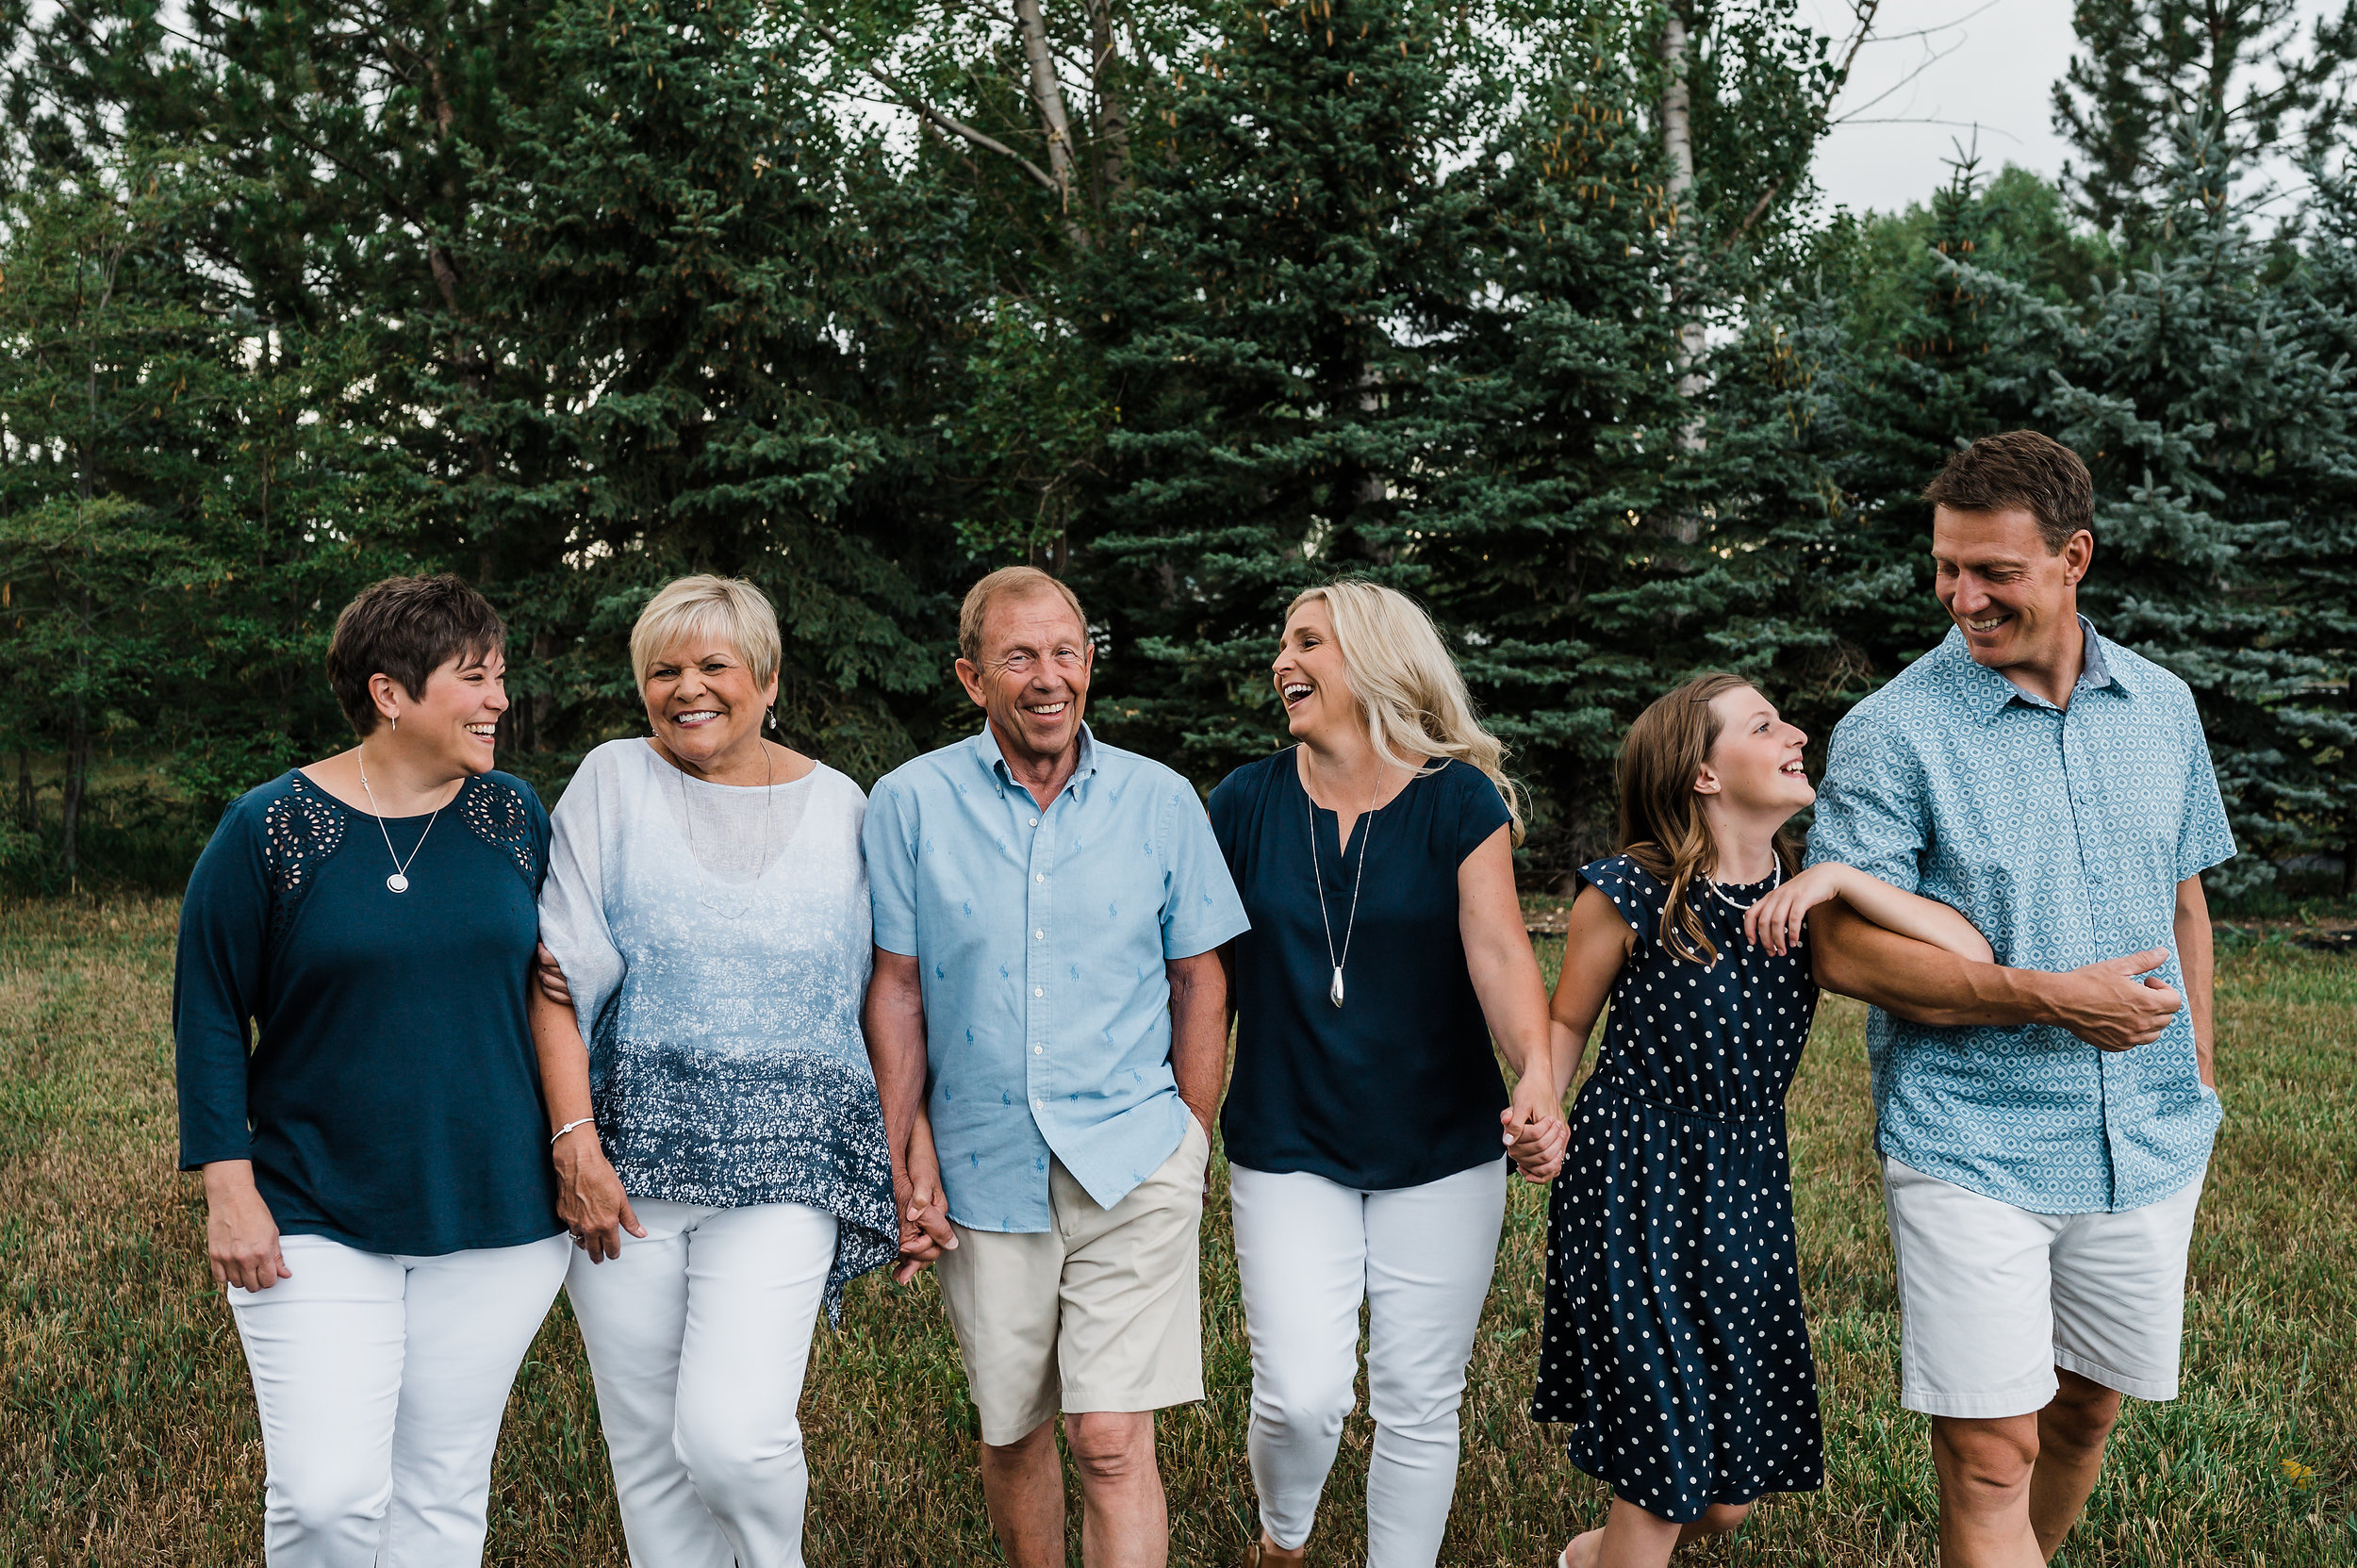 How to coordinate colors for family photos